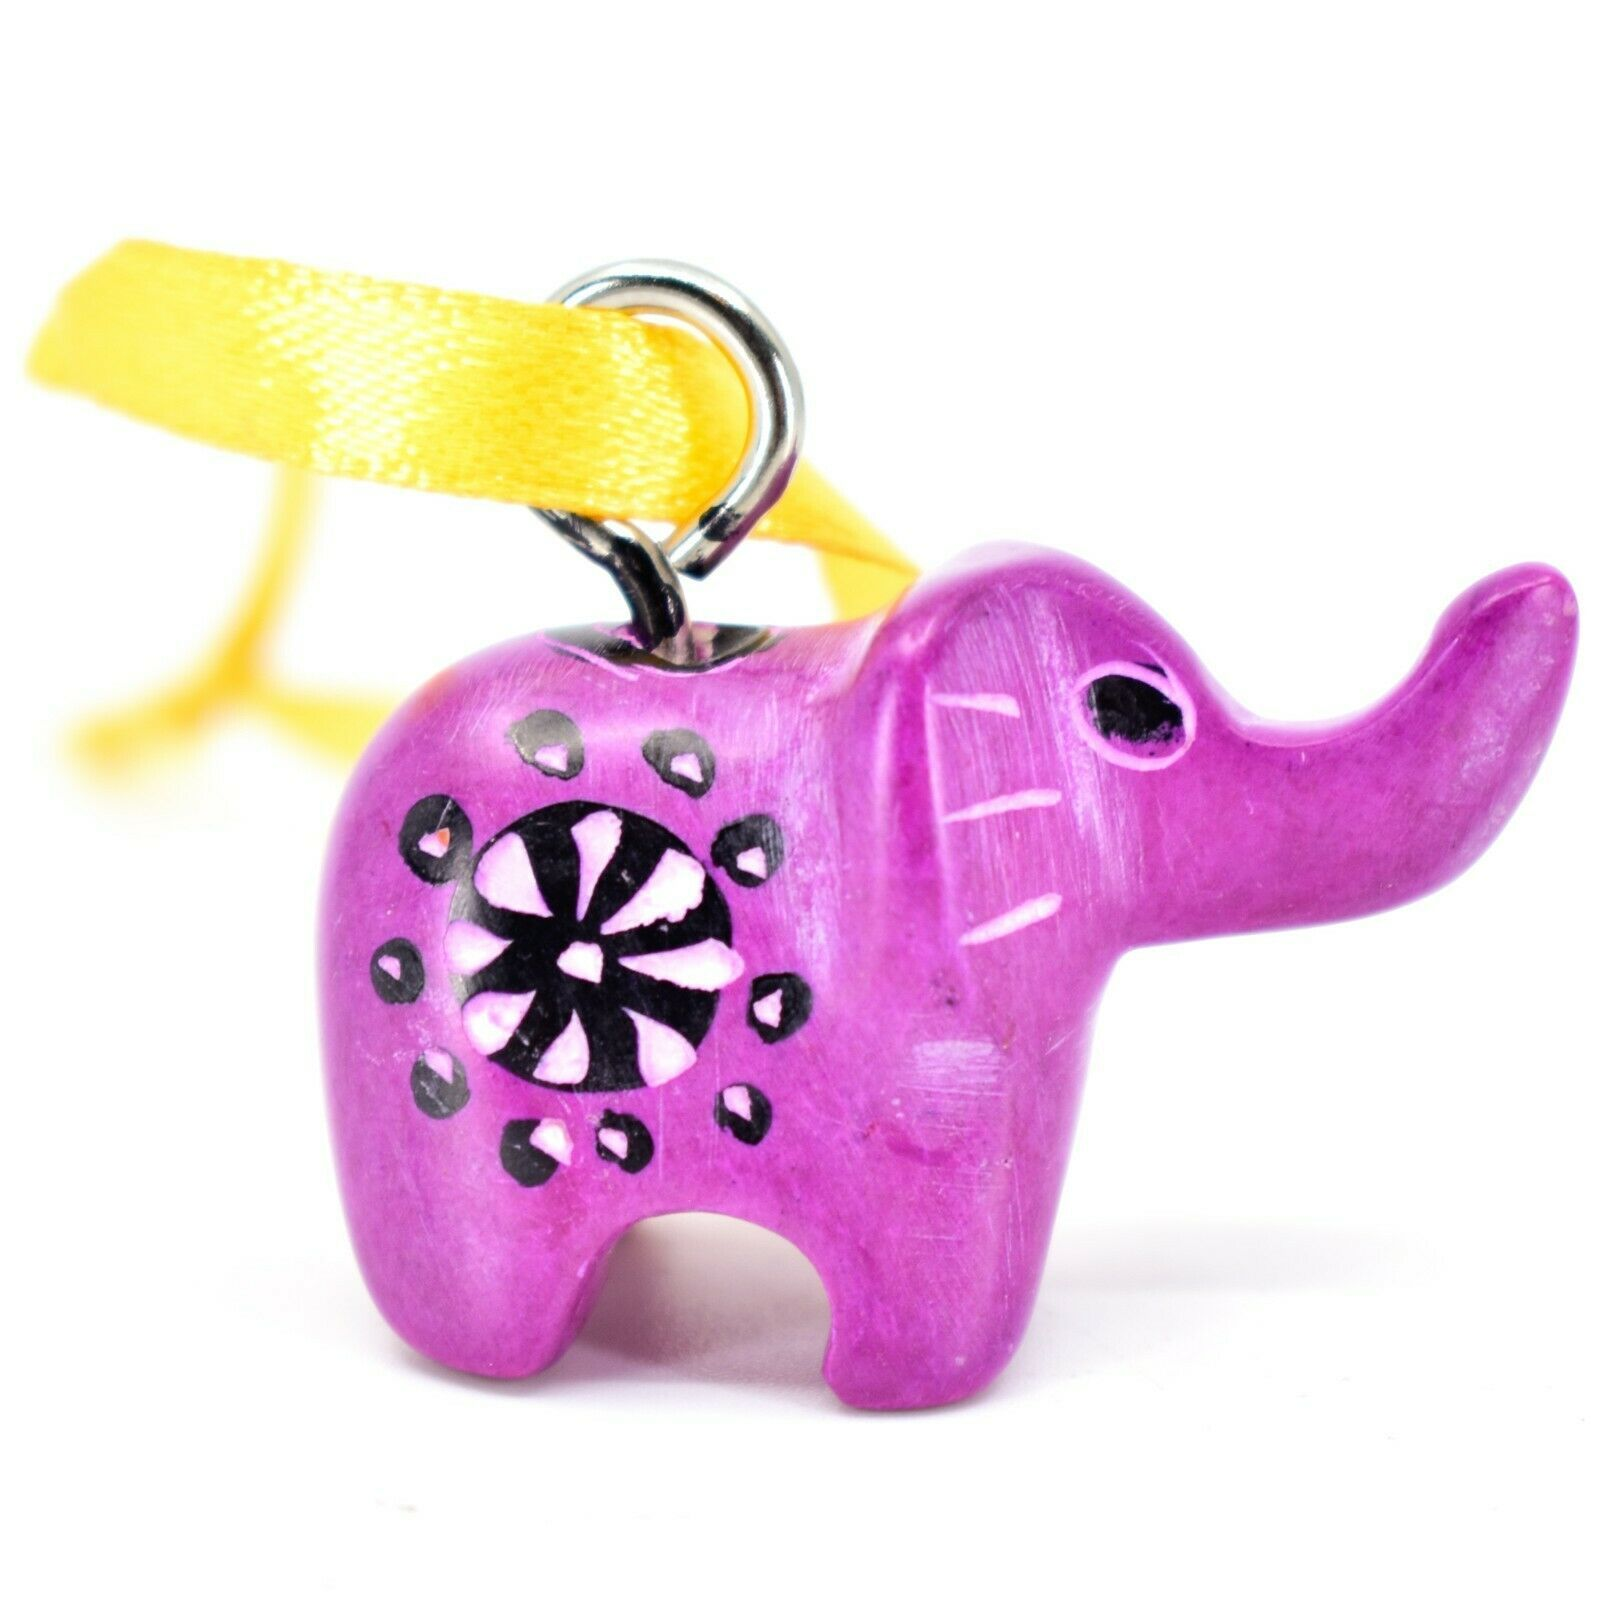 Vaneak Group Hand Crafted Carved Soapstone Fuchsia Elephant Ornament Figure